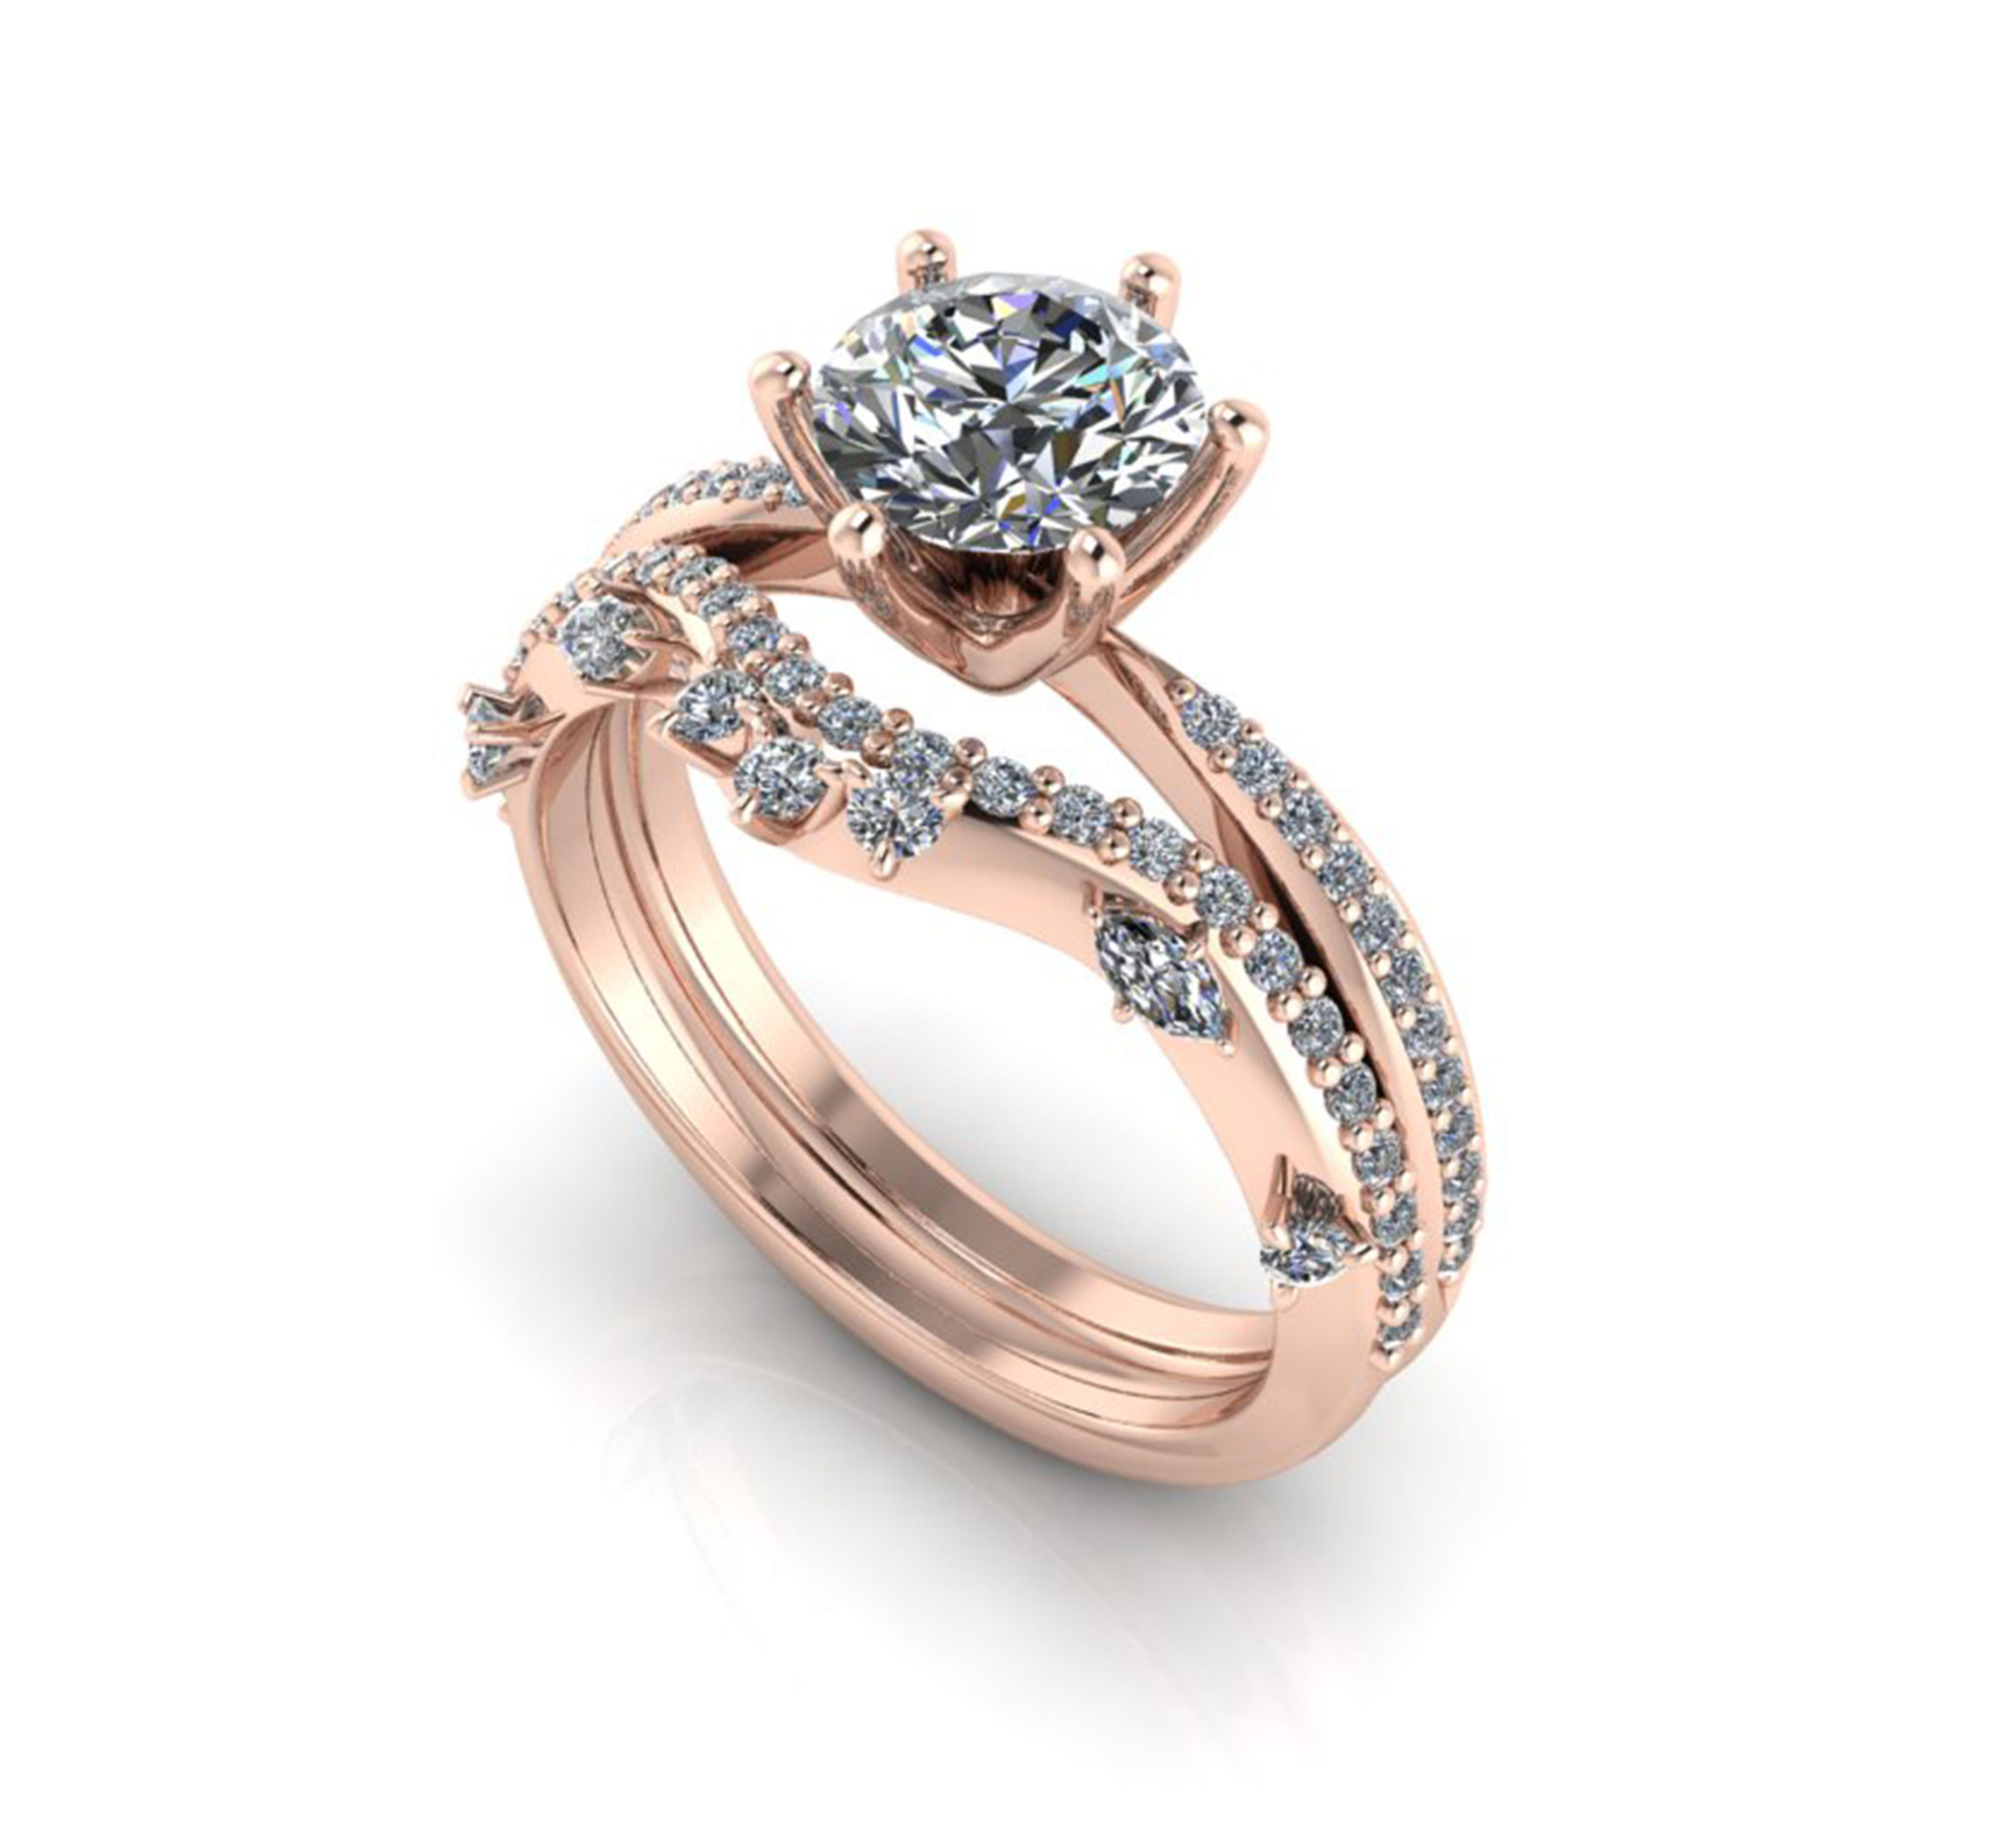 How To Choose The Best Groom's Wedding Ring?